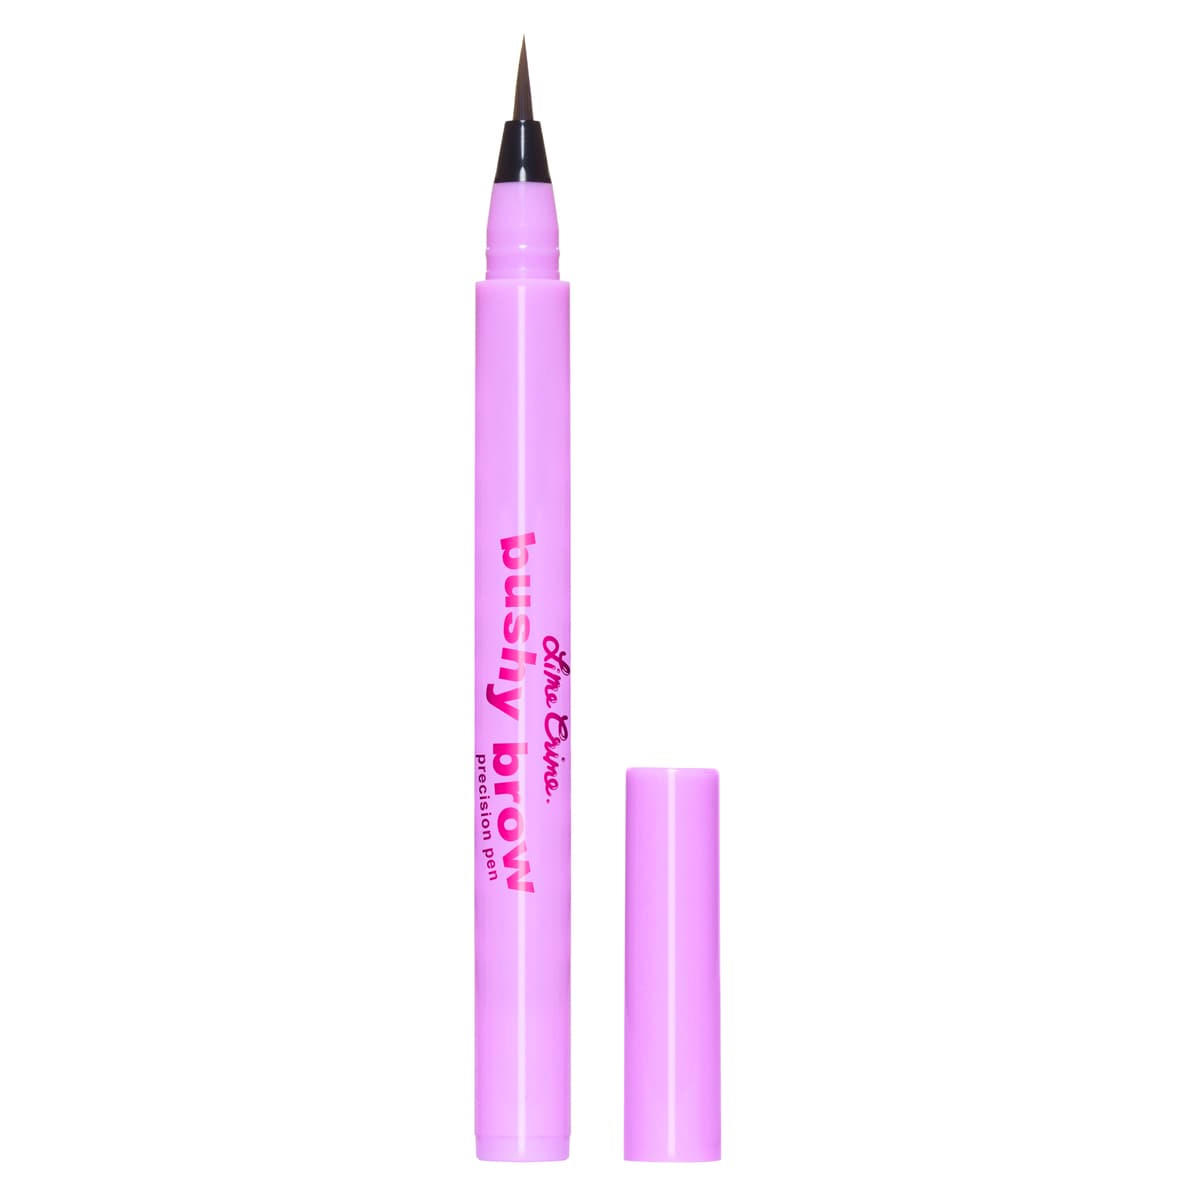 Lime Crime Bushy Brow Precision Pen Redhead